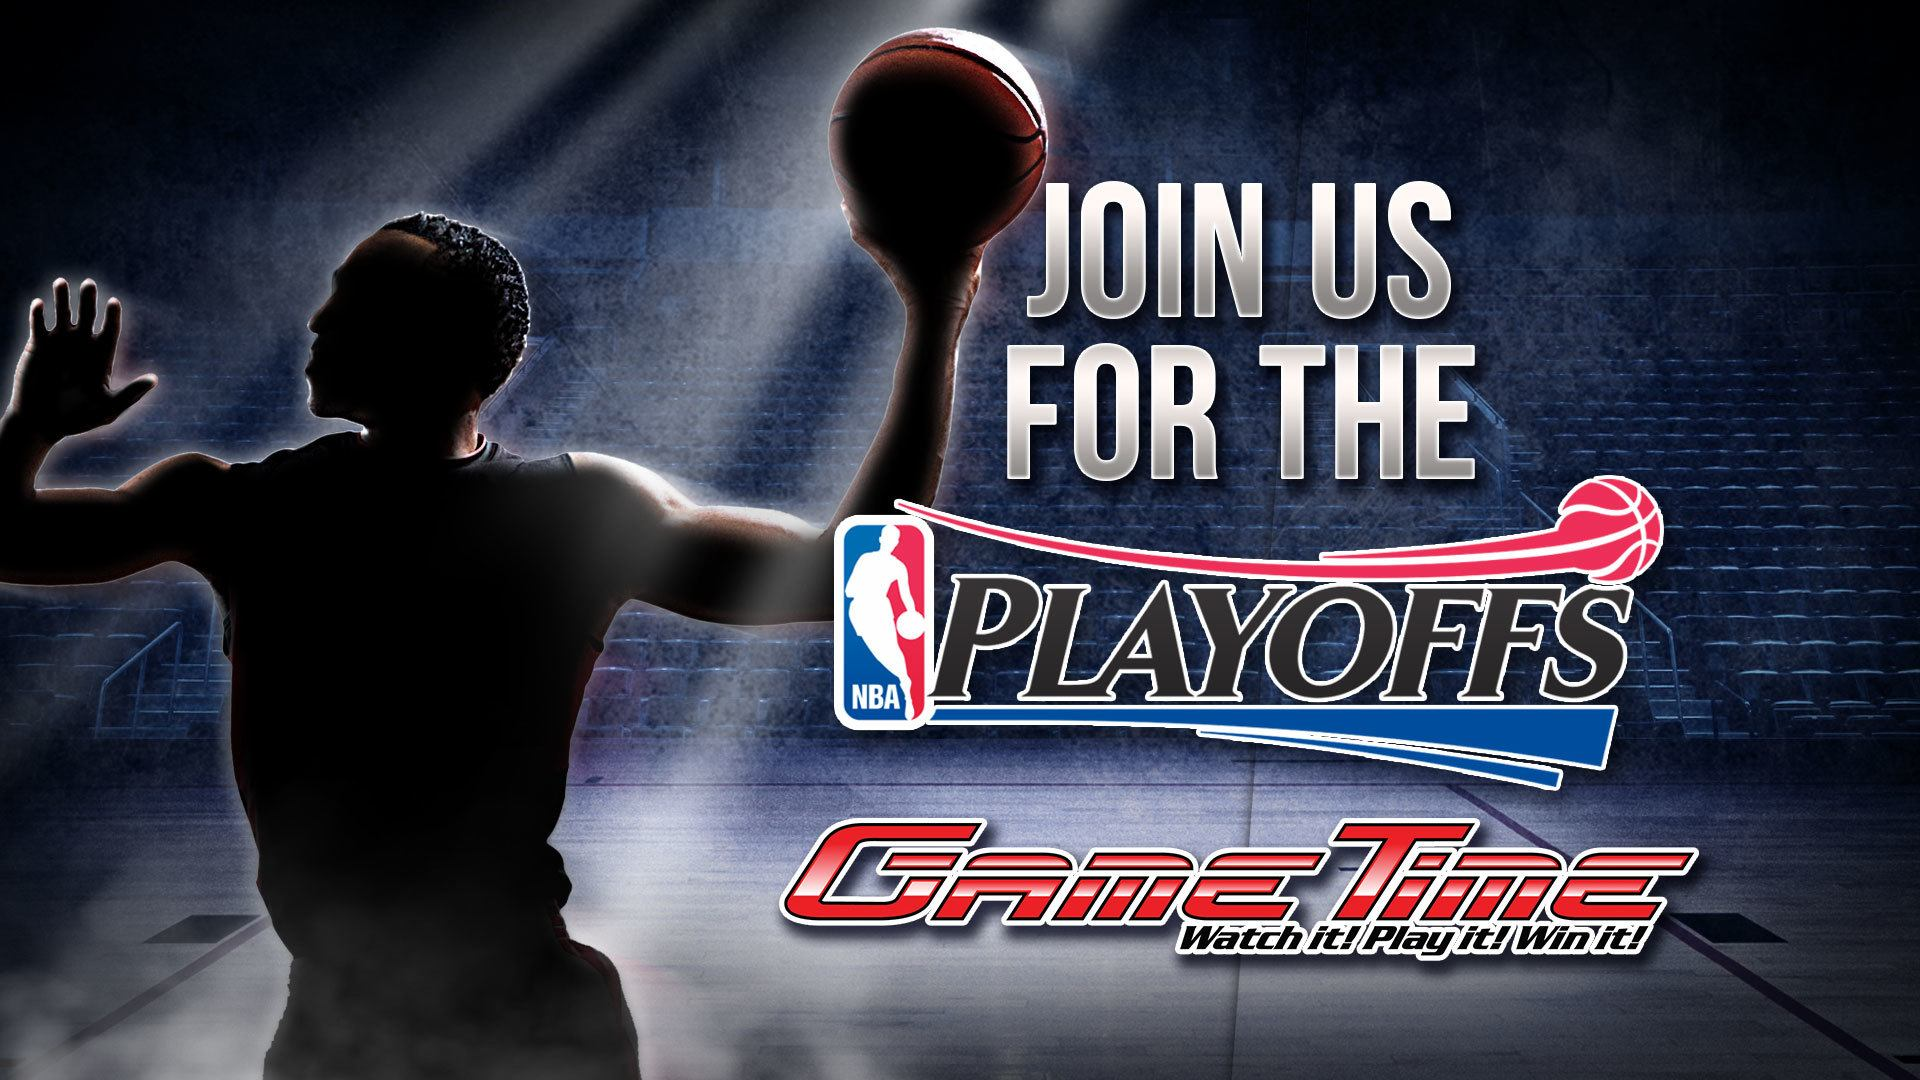 Watch_the_NBA_games_and_Playoffs_at_GameTime_Miami_Tampa_Fort_Myers